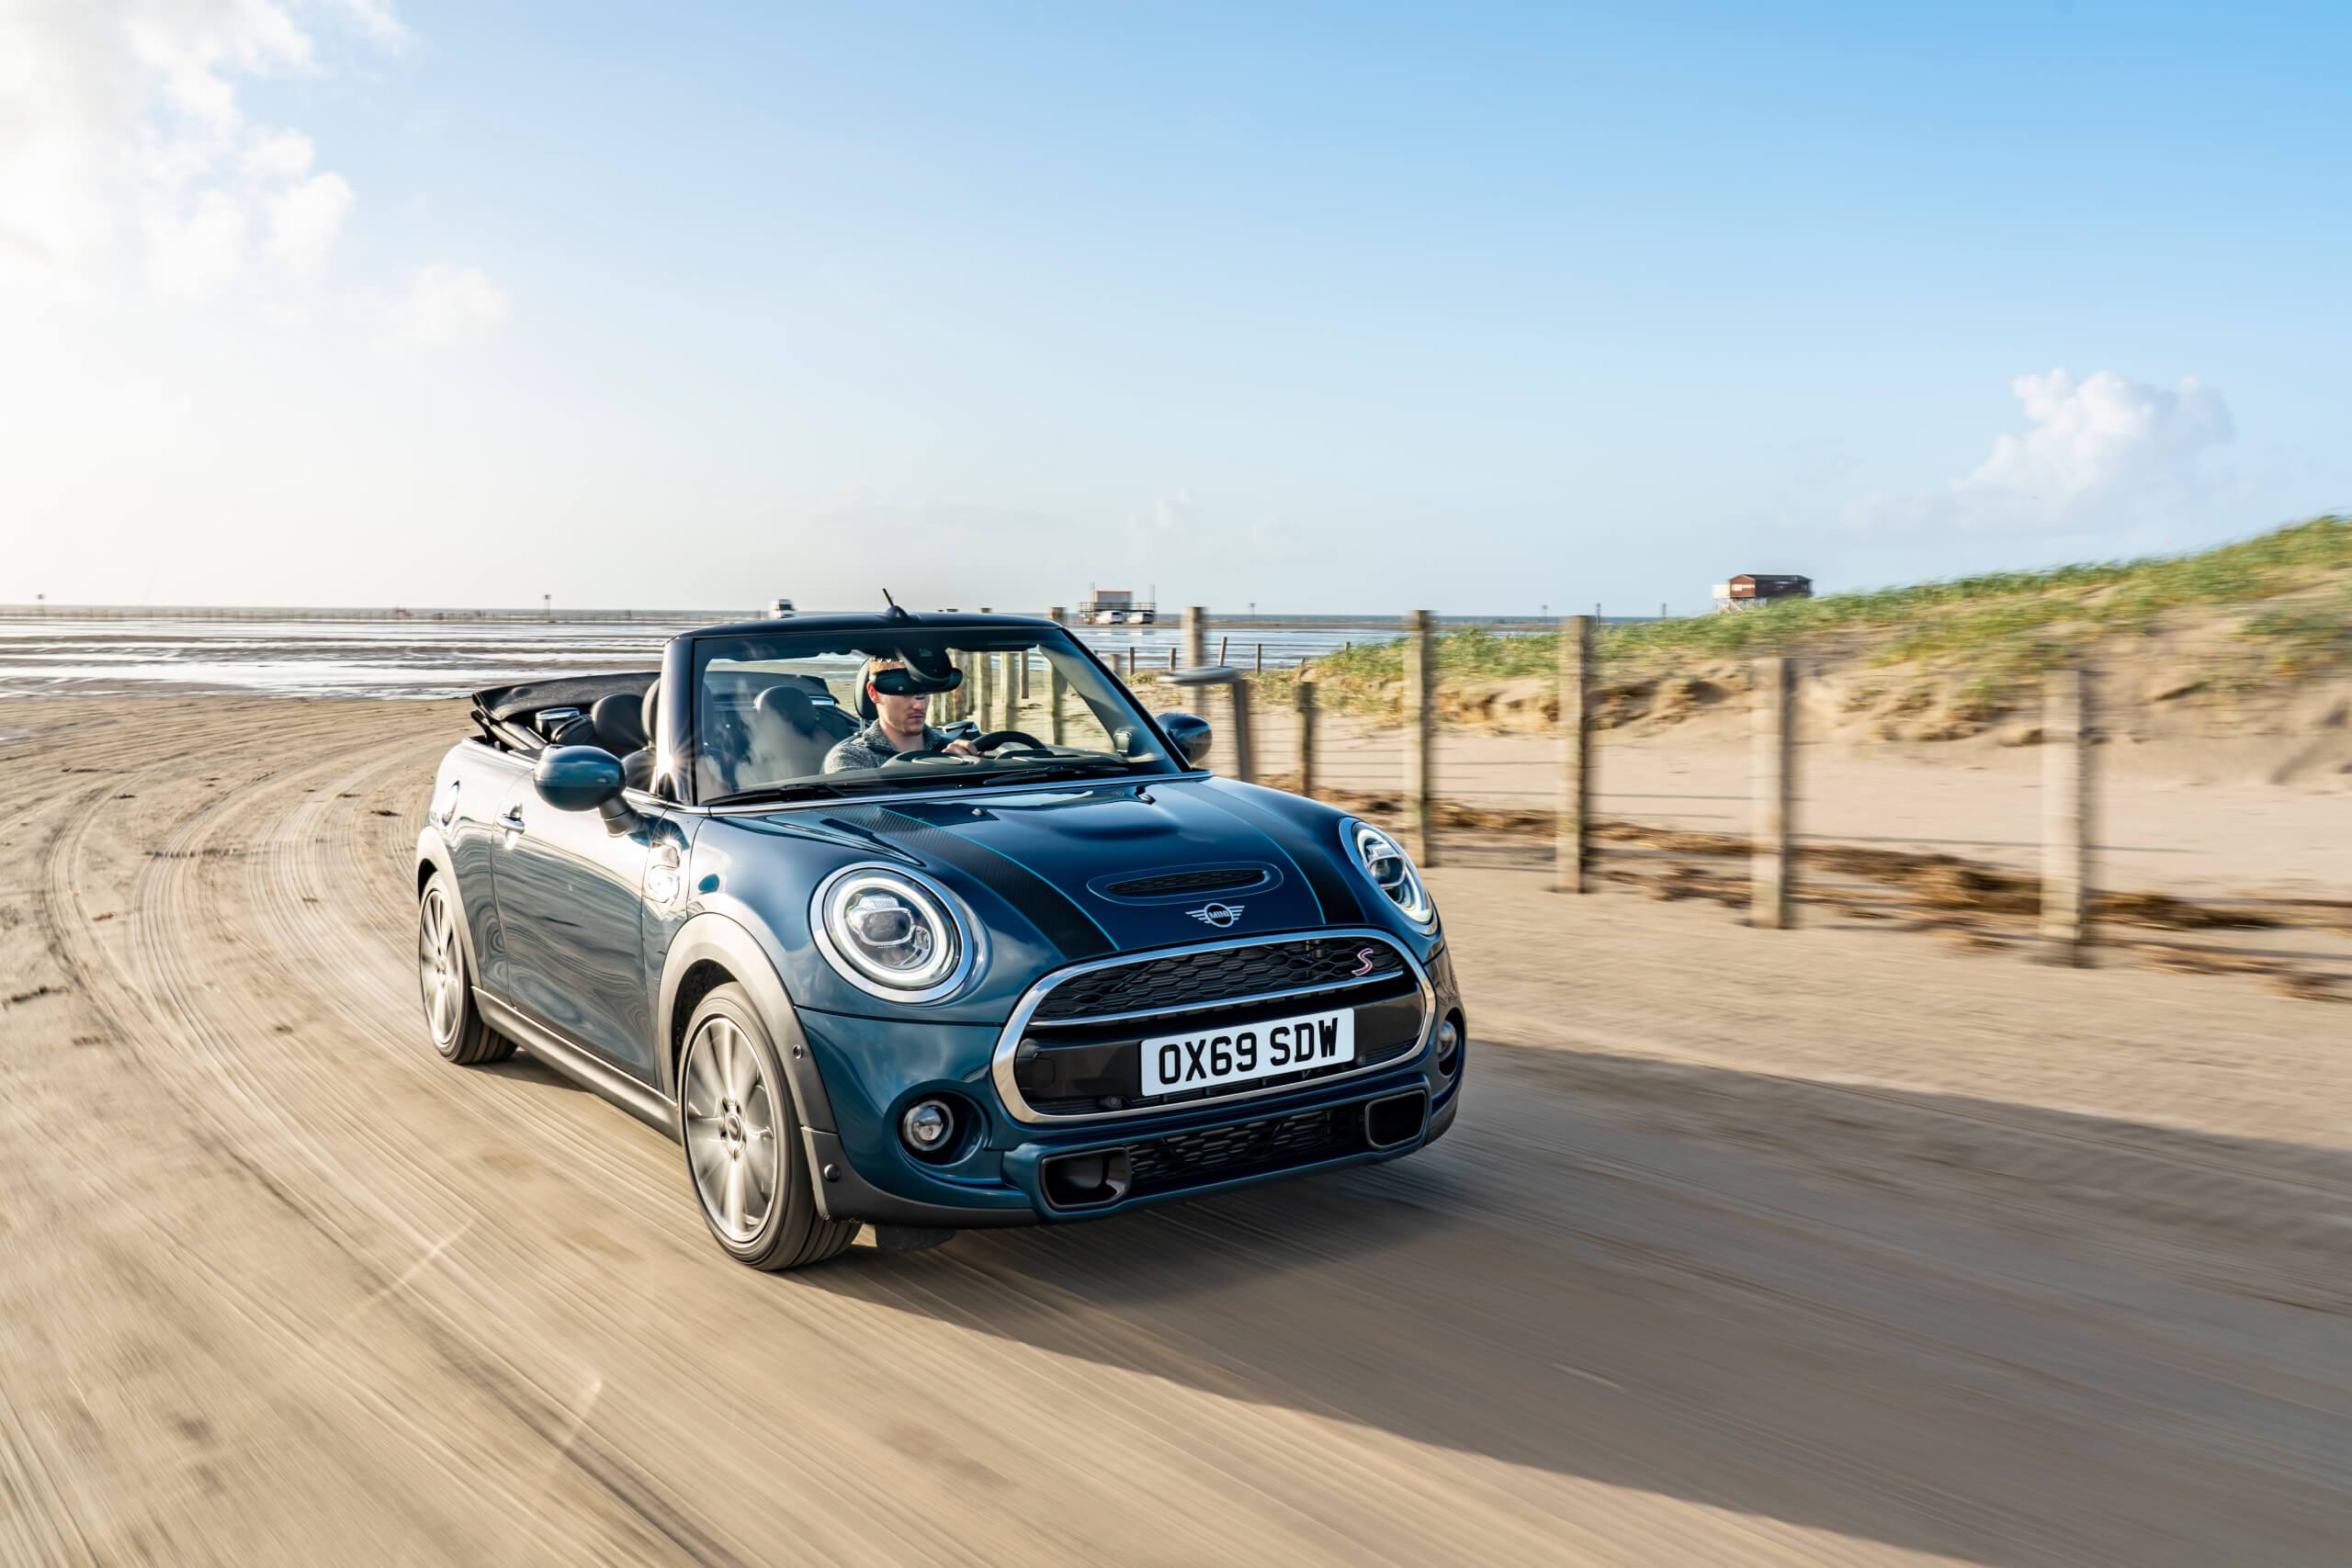 MINI's Sidewalk package adds cosmetic touches to its convertible model.